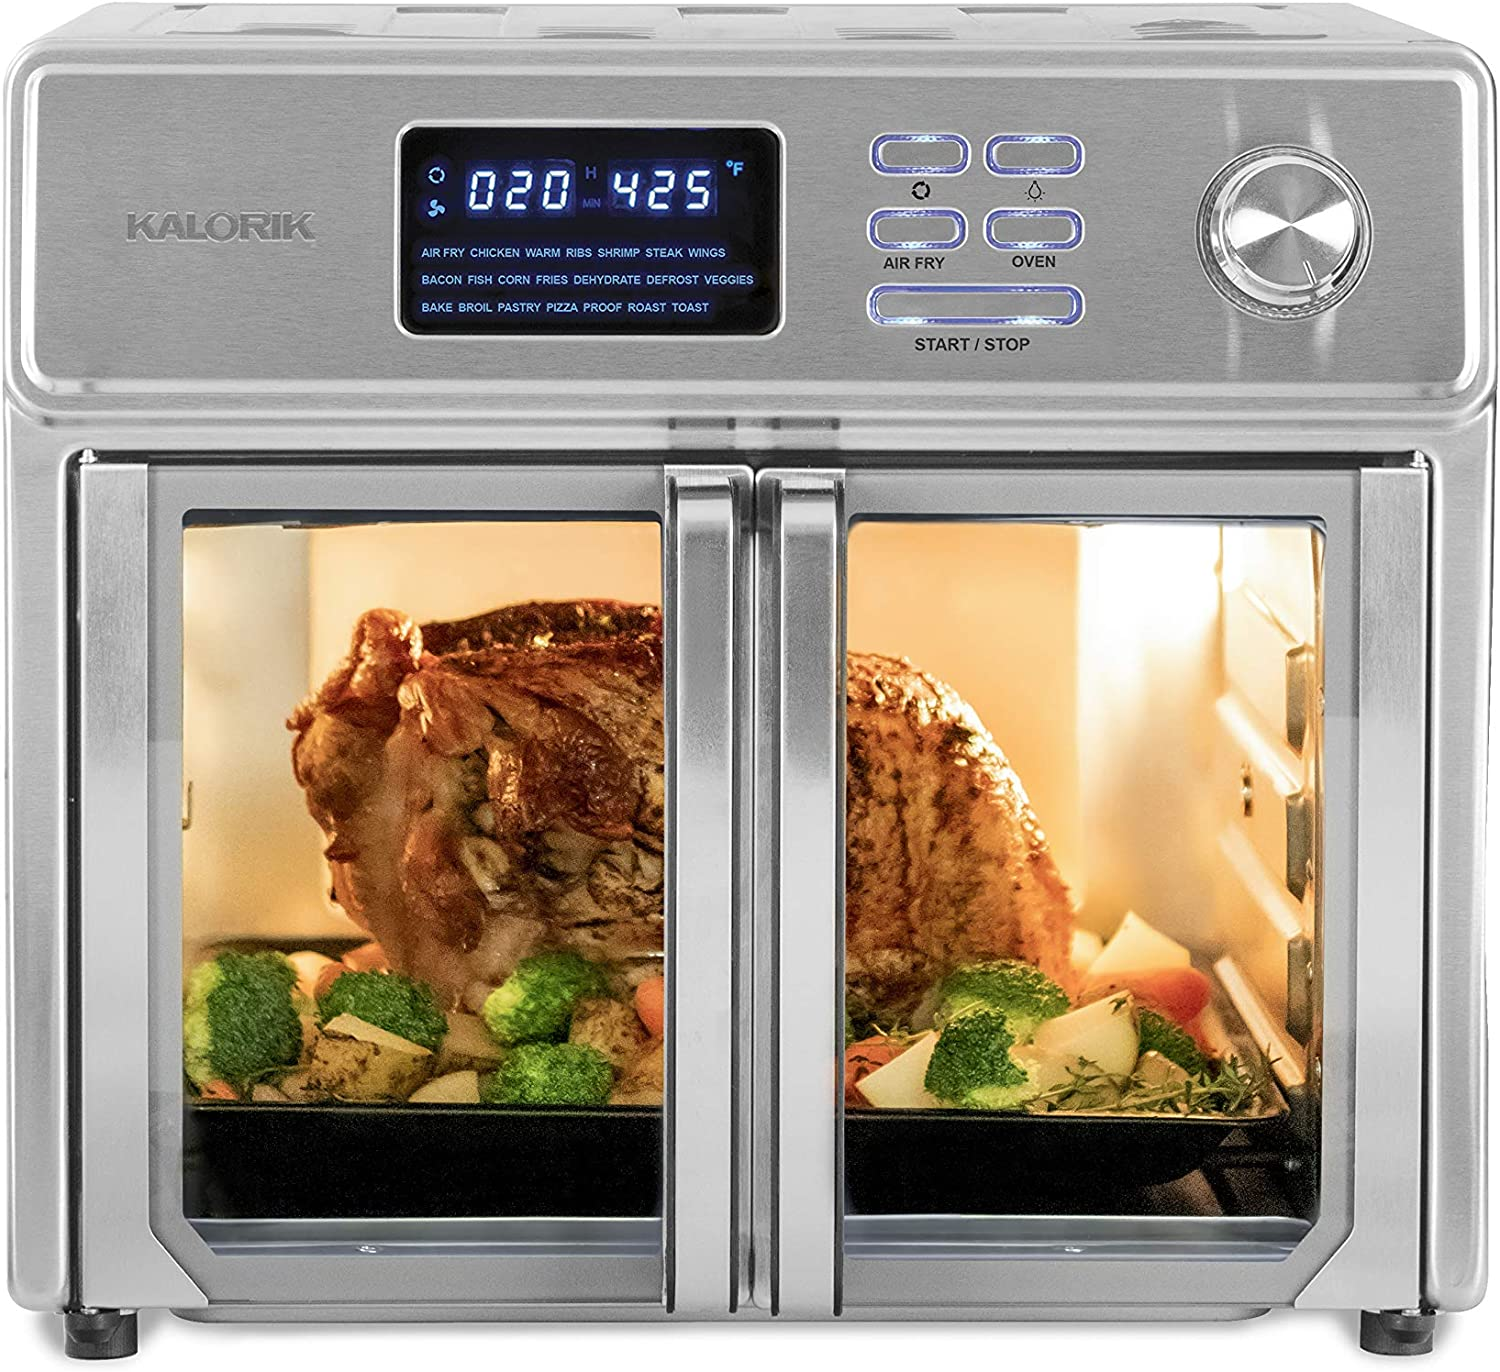 Kalorik Digital Maxx Air Fryer Oven Favhomedecor